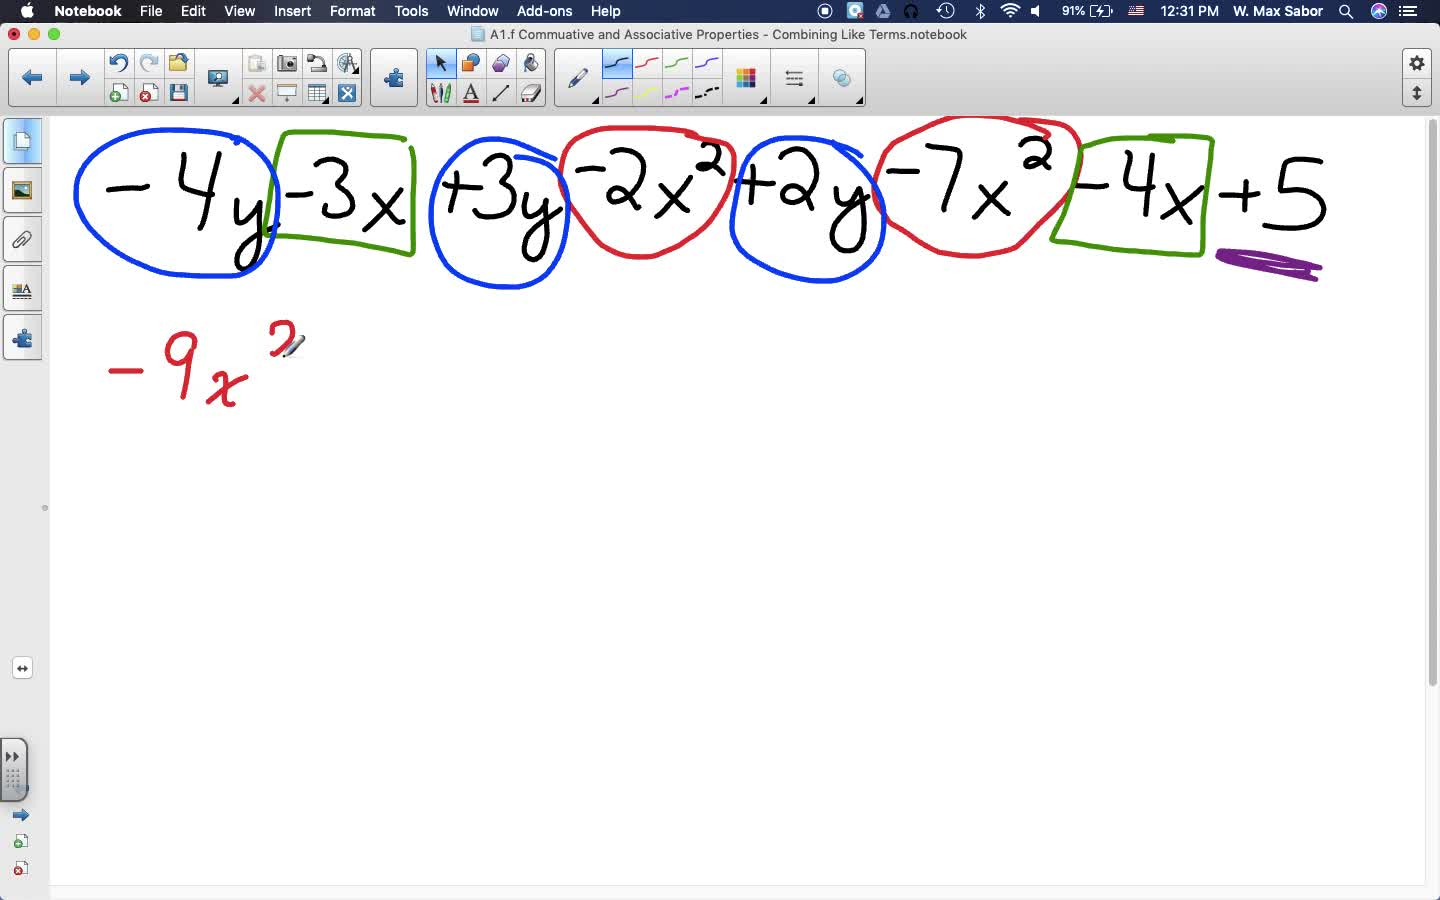 A1.f Commutative and Associative Properties - Combining Like Terms